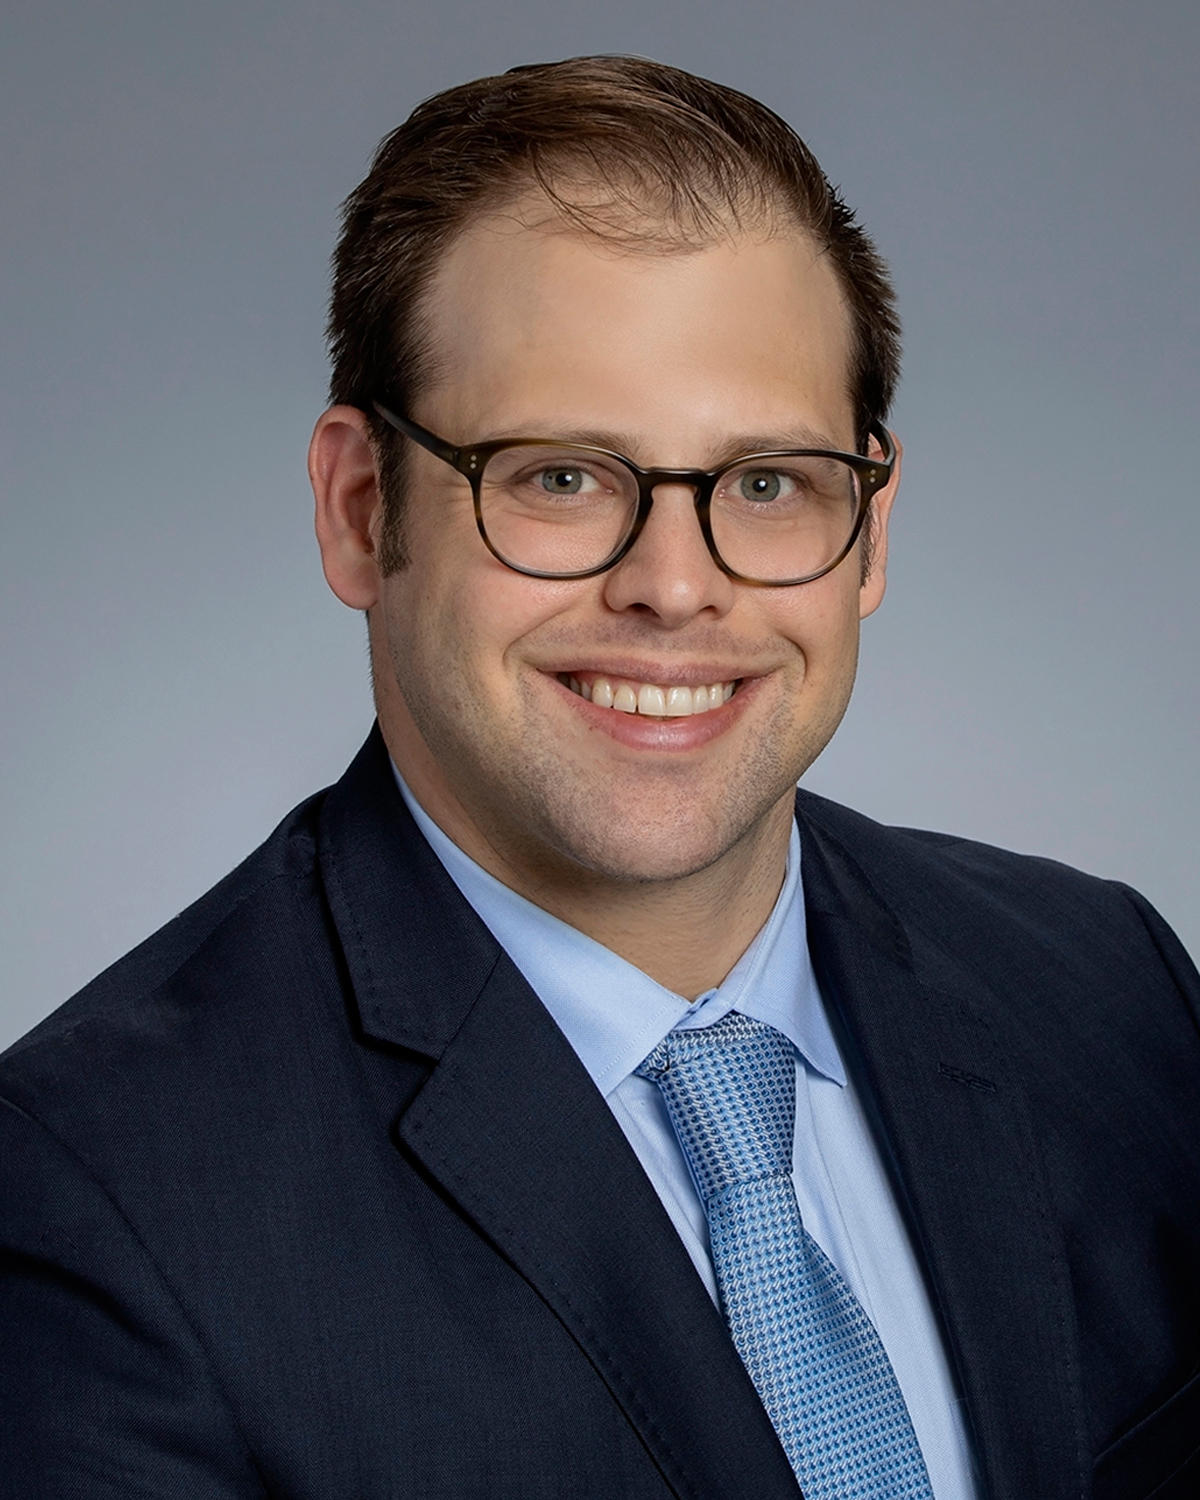 Zachary N. Gross, MD